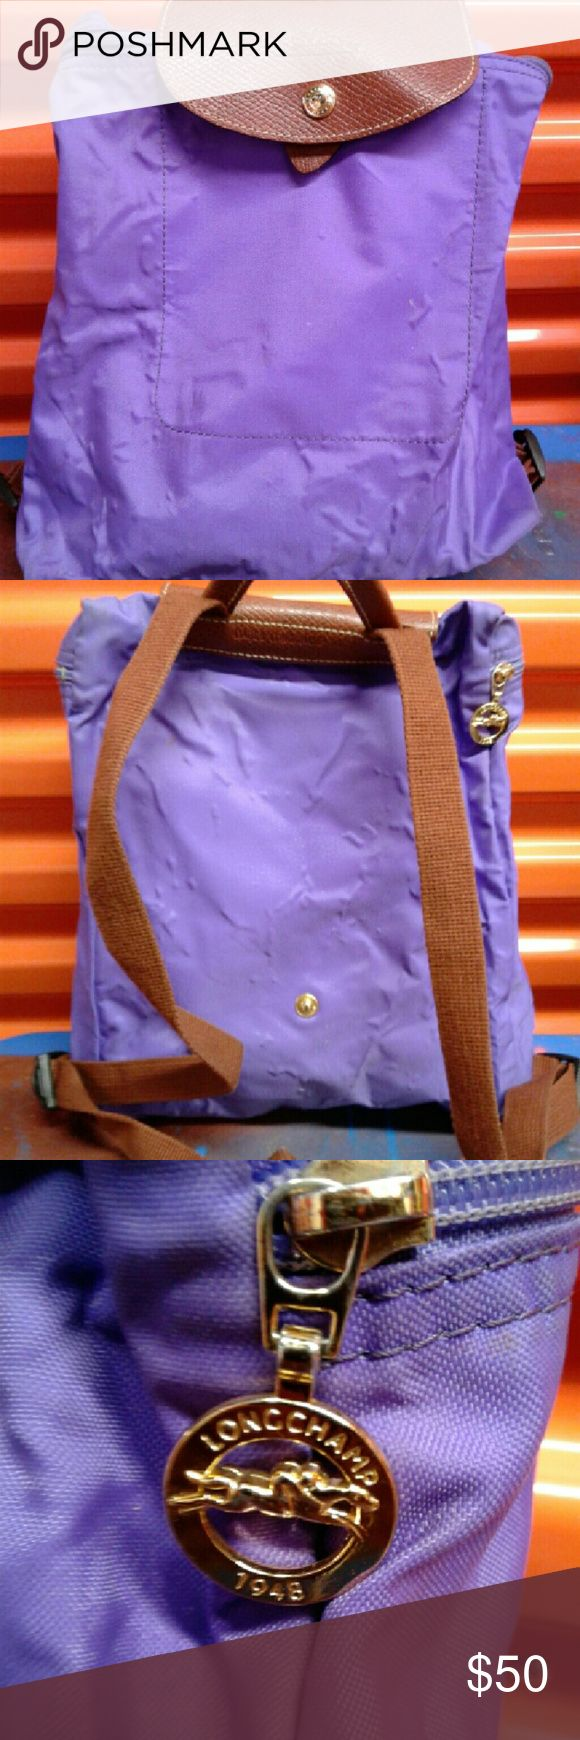 Authentic Longchamp Le Pilage Backpack SALE This is purple  and I had it for a while as it shows. Up for quick sale Longchamp Bags Backpacks